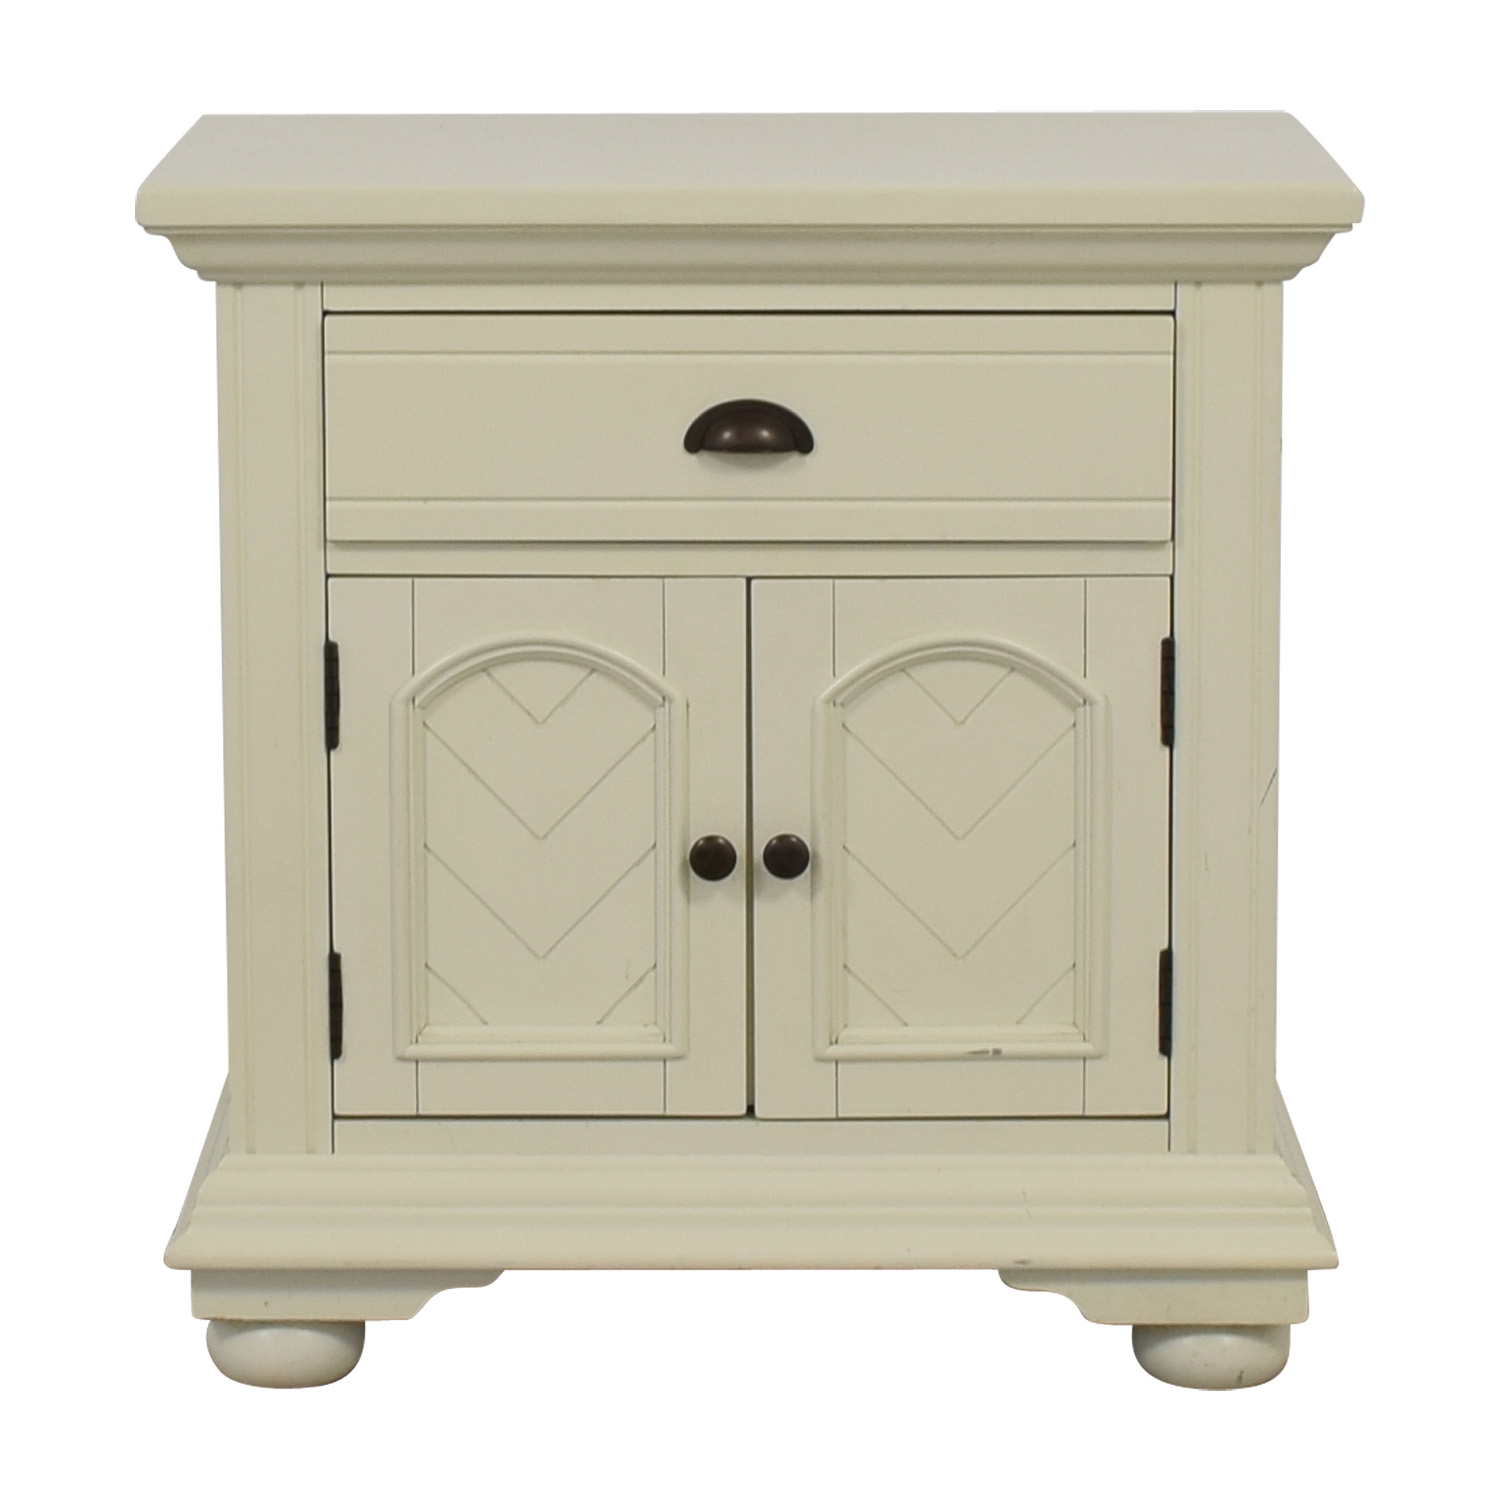 White Single-Drawer Night Table dimensions